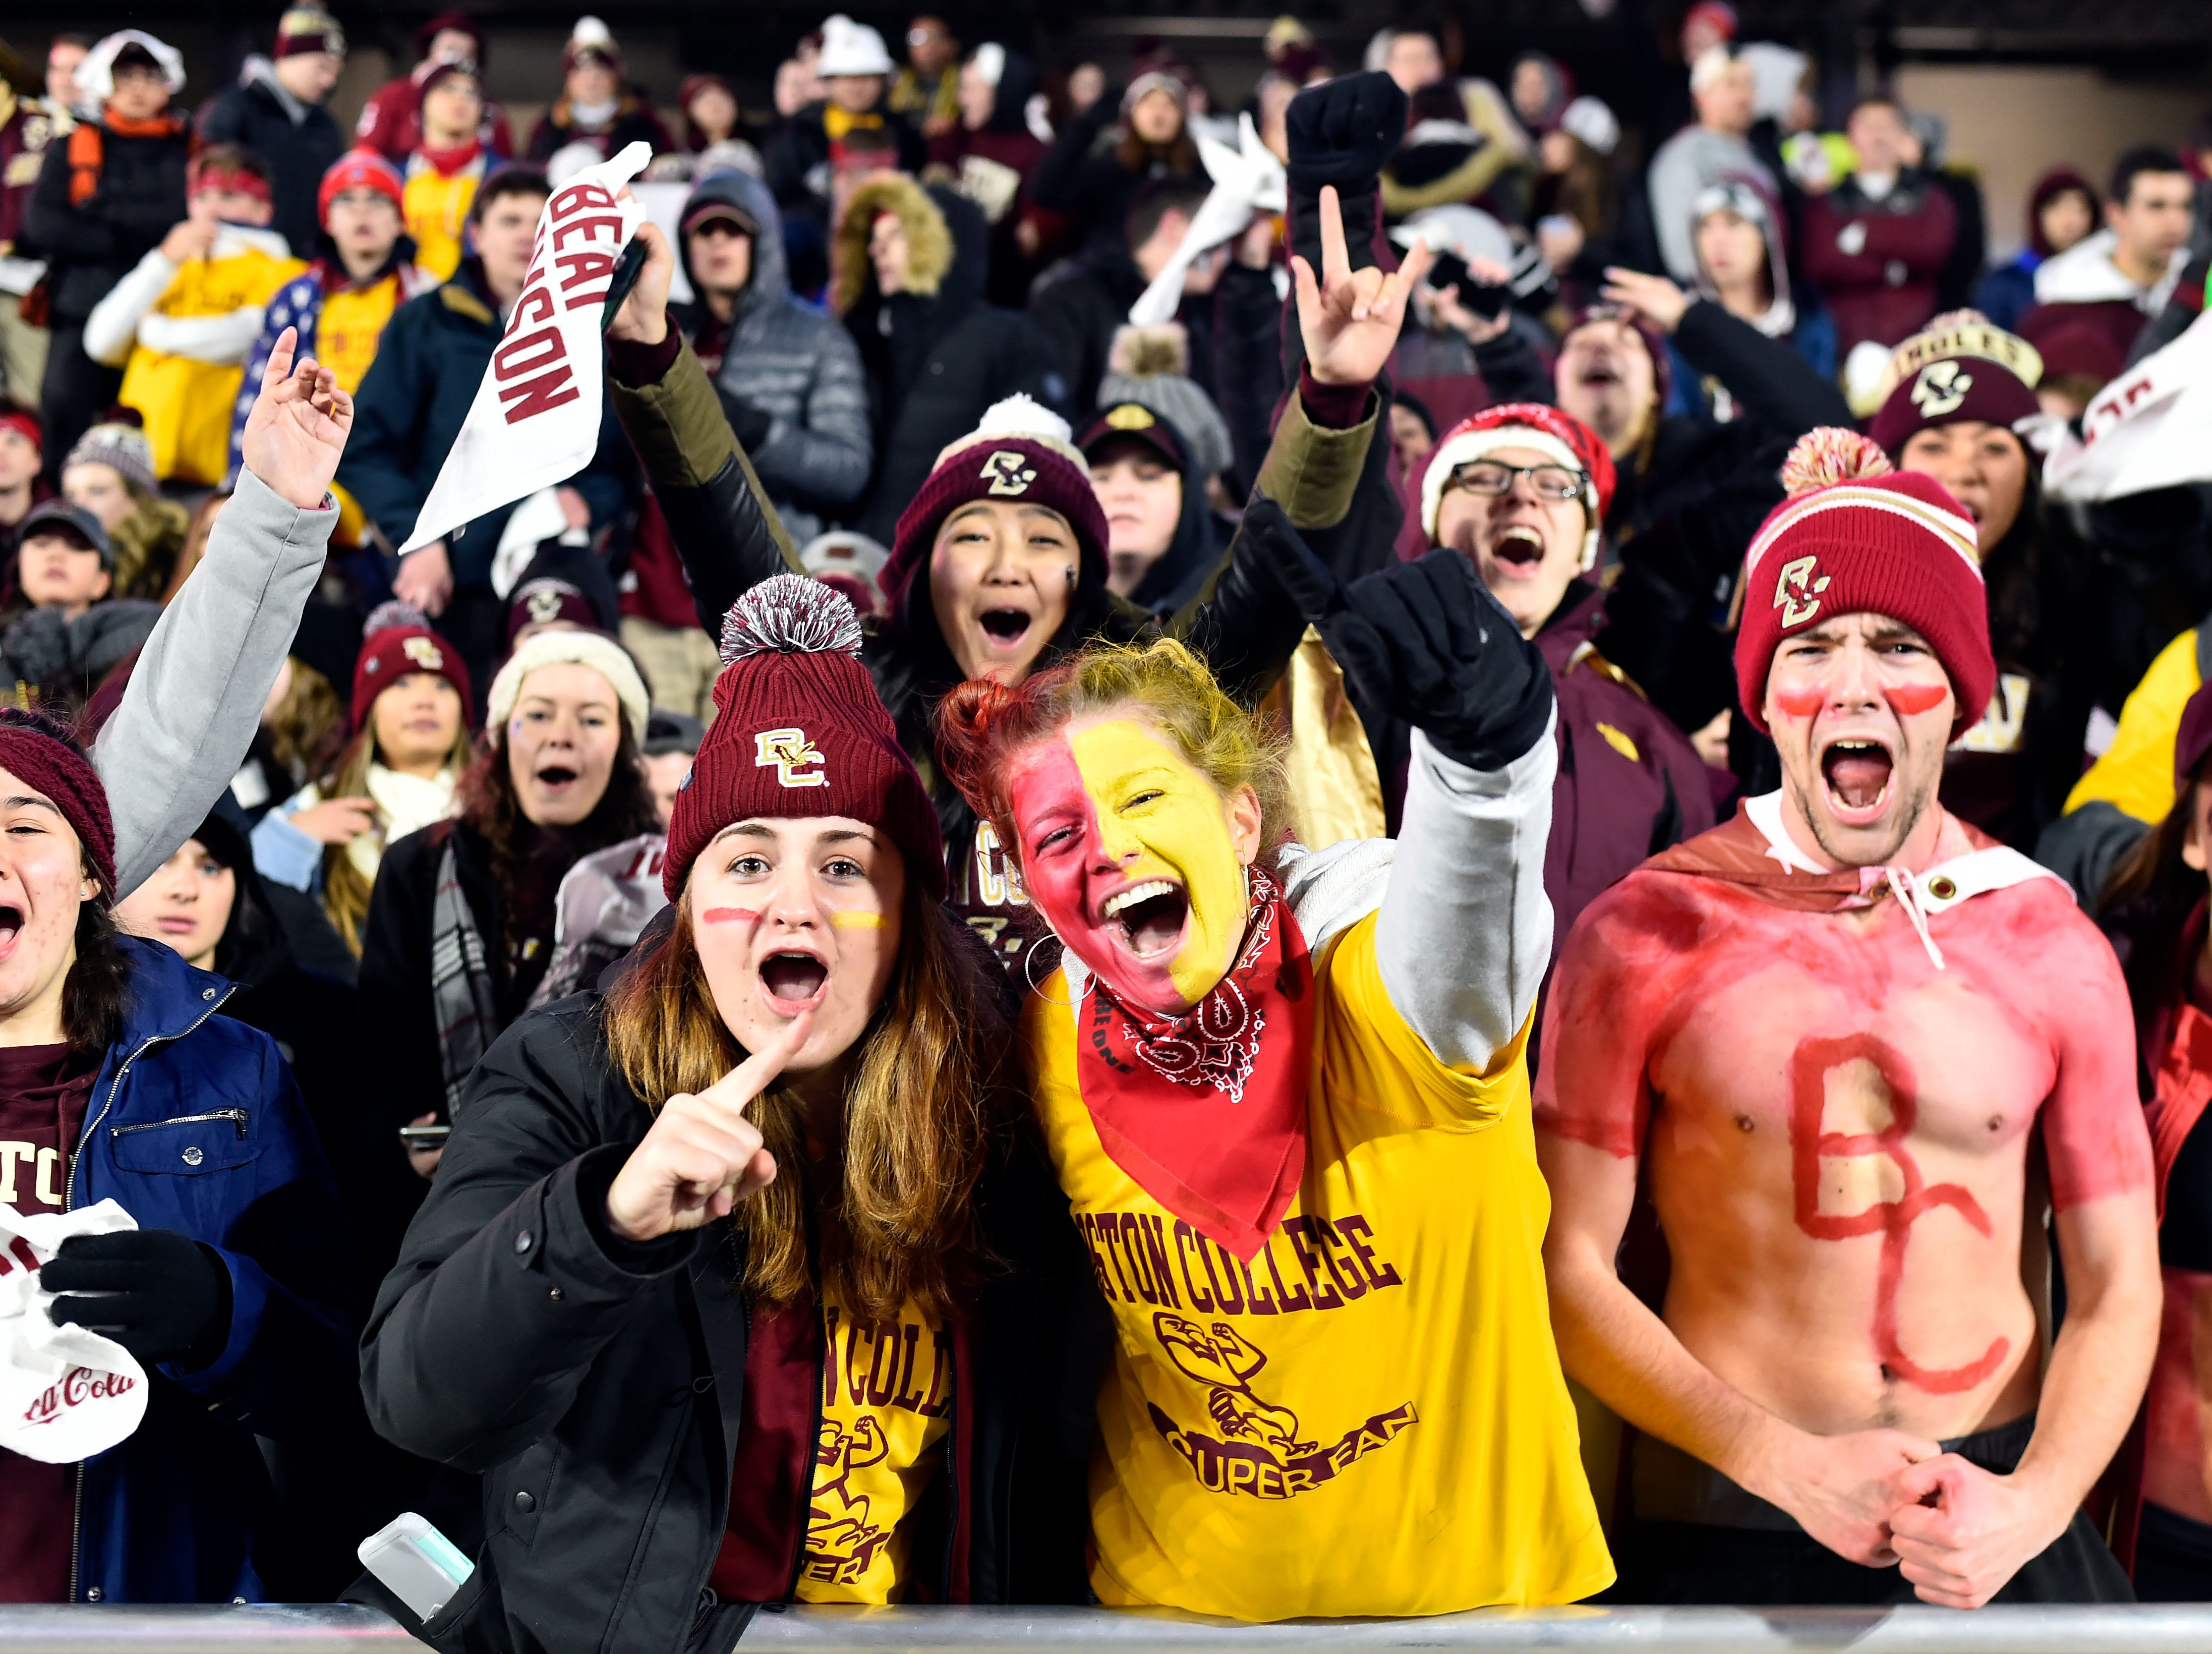 Week 11: Boston College Eagles fans cheer before a game against the Clemson Tigers at Alumni Stadium.